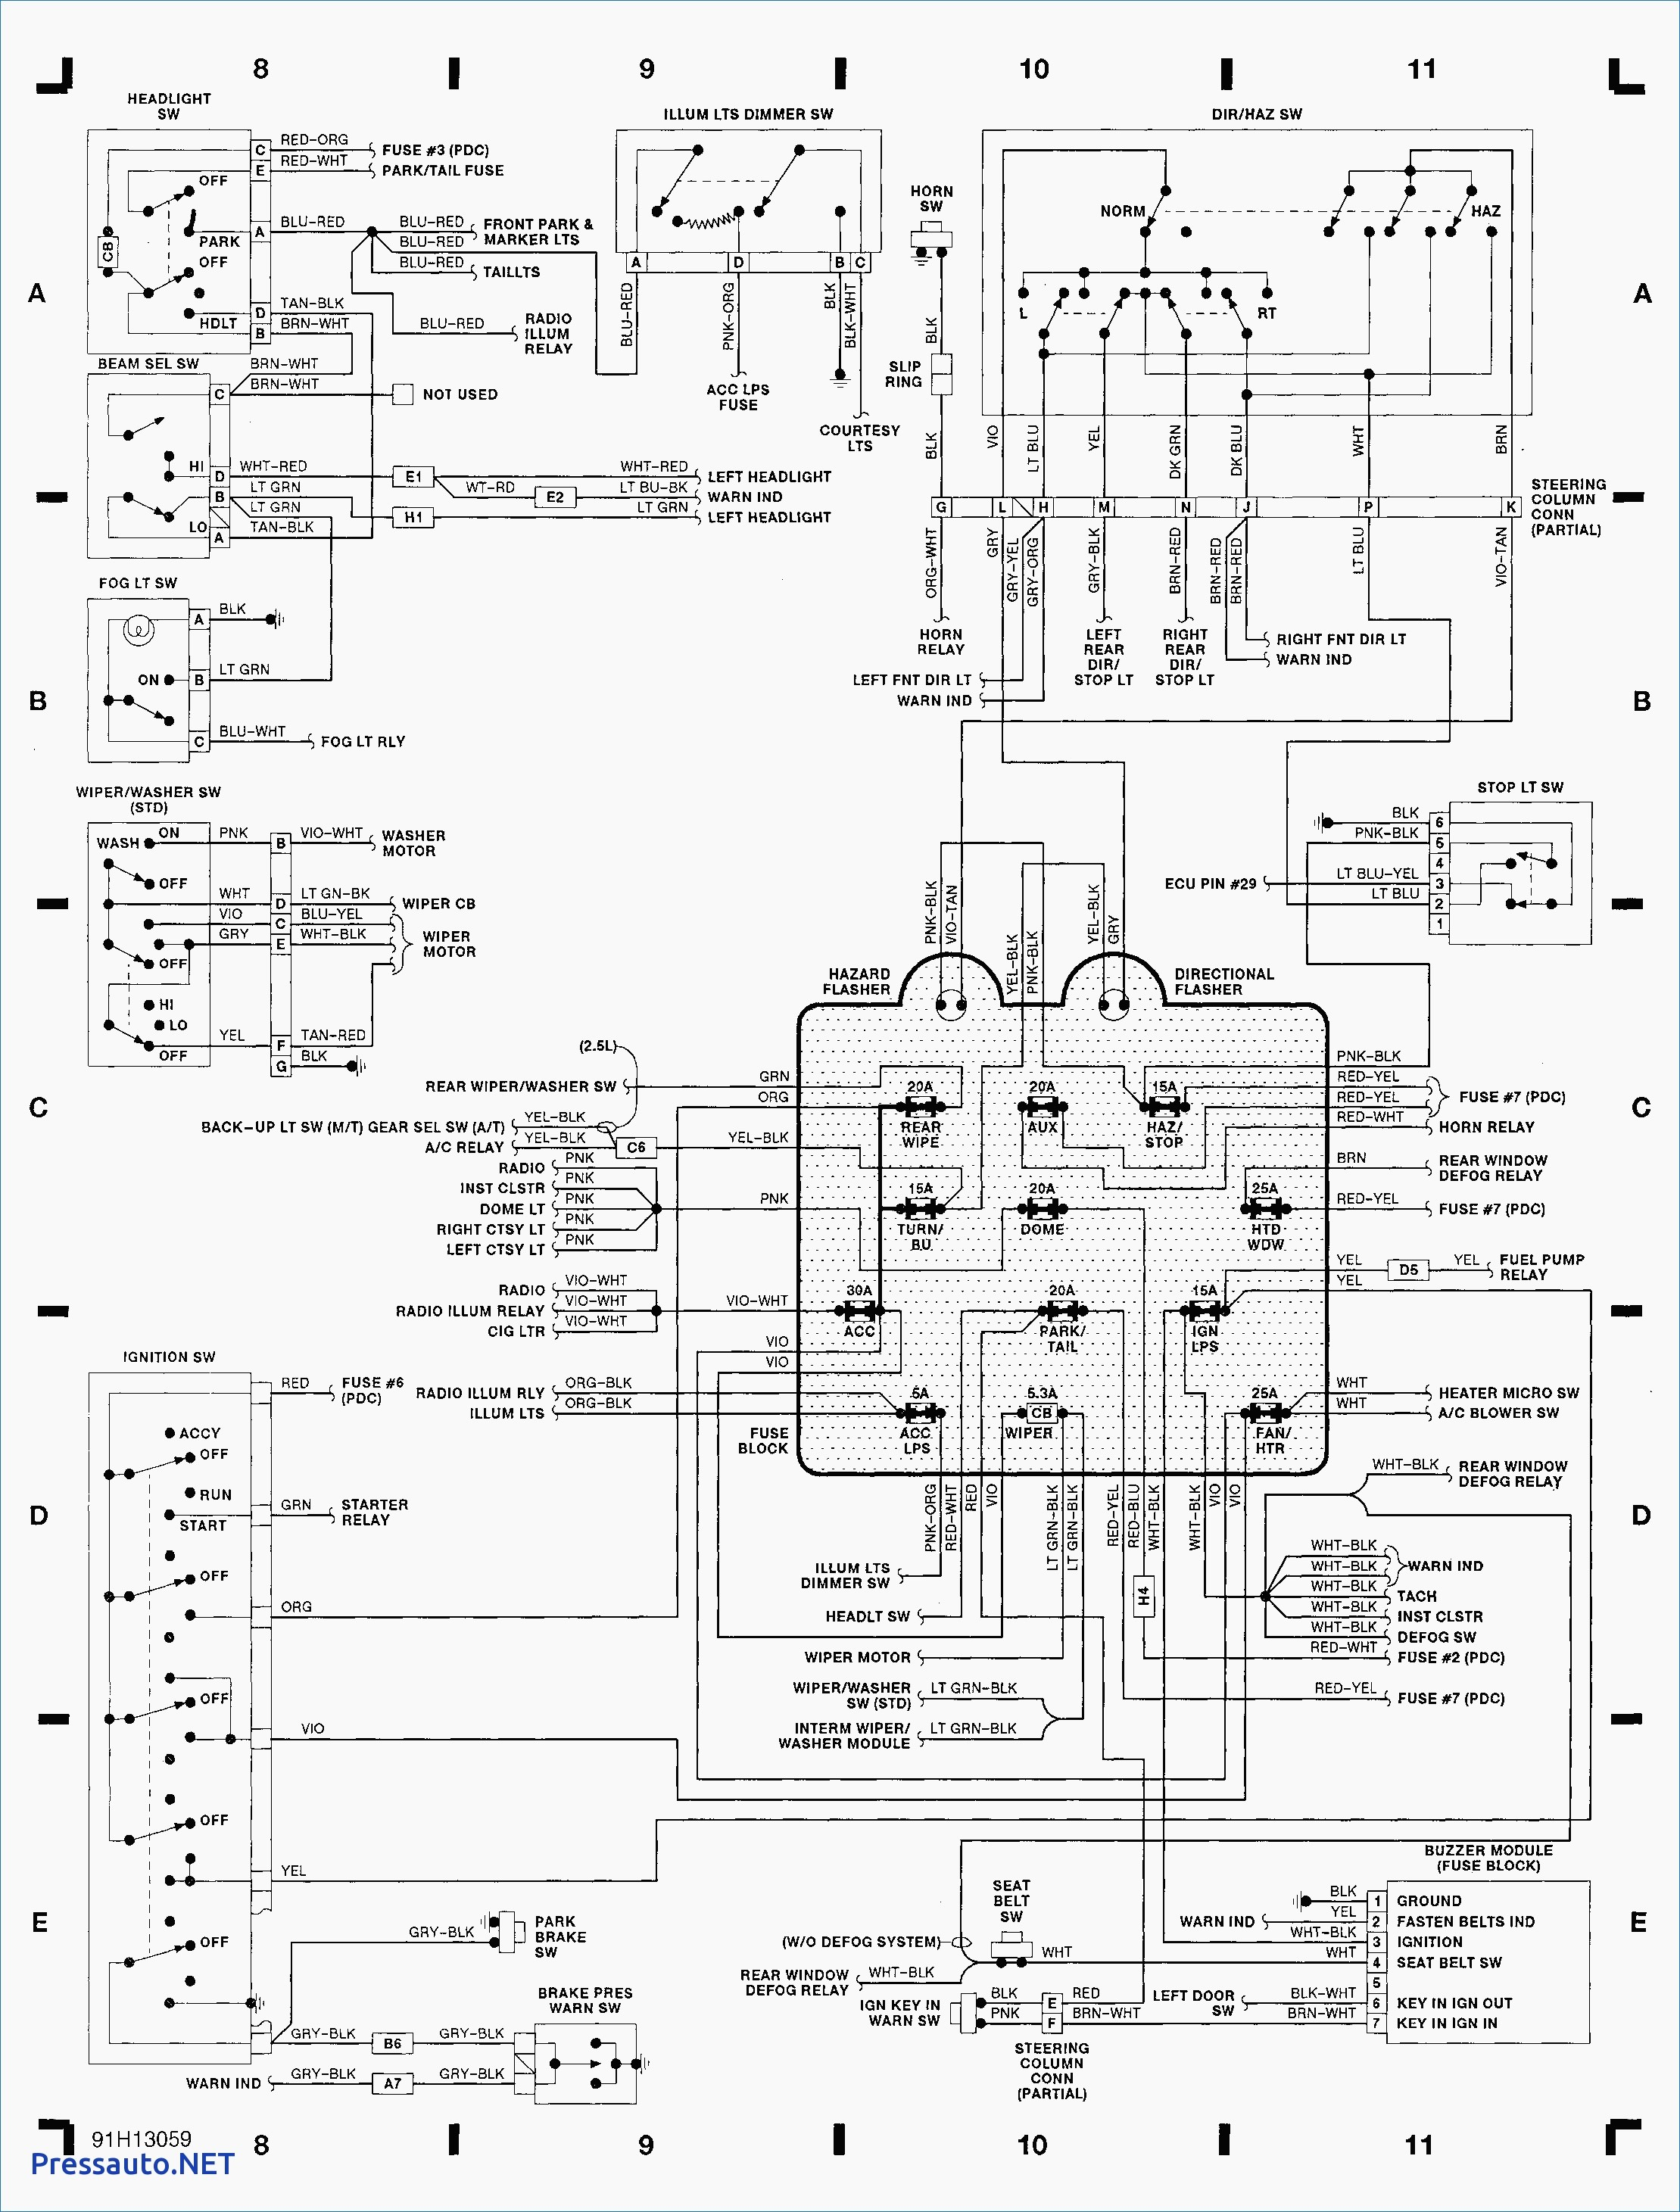 1995 Jeep Wrangler Wiring Diagram Radio FULL HD Version Diagram Radio -  NASSI-SHNEIDERMAN-DIAGRAM.EMBALLAGES-SOUS-VIDE.FREMBALLAGES-SOUS-VIDE.FR